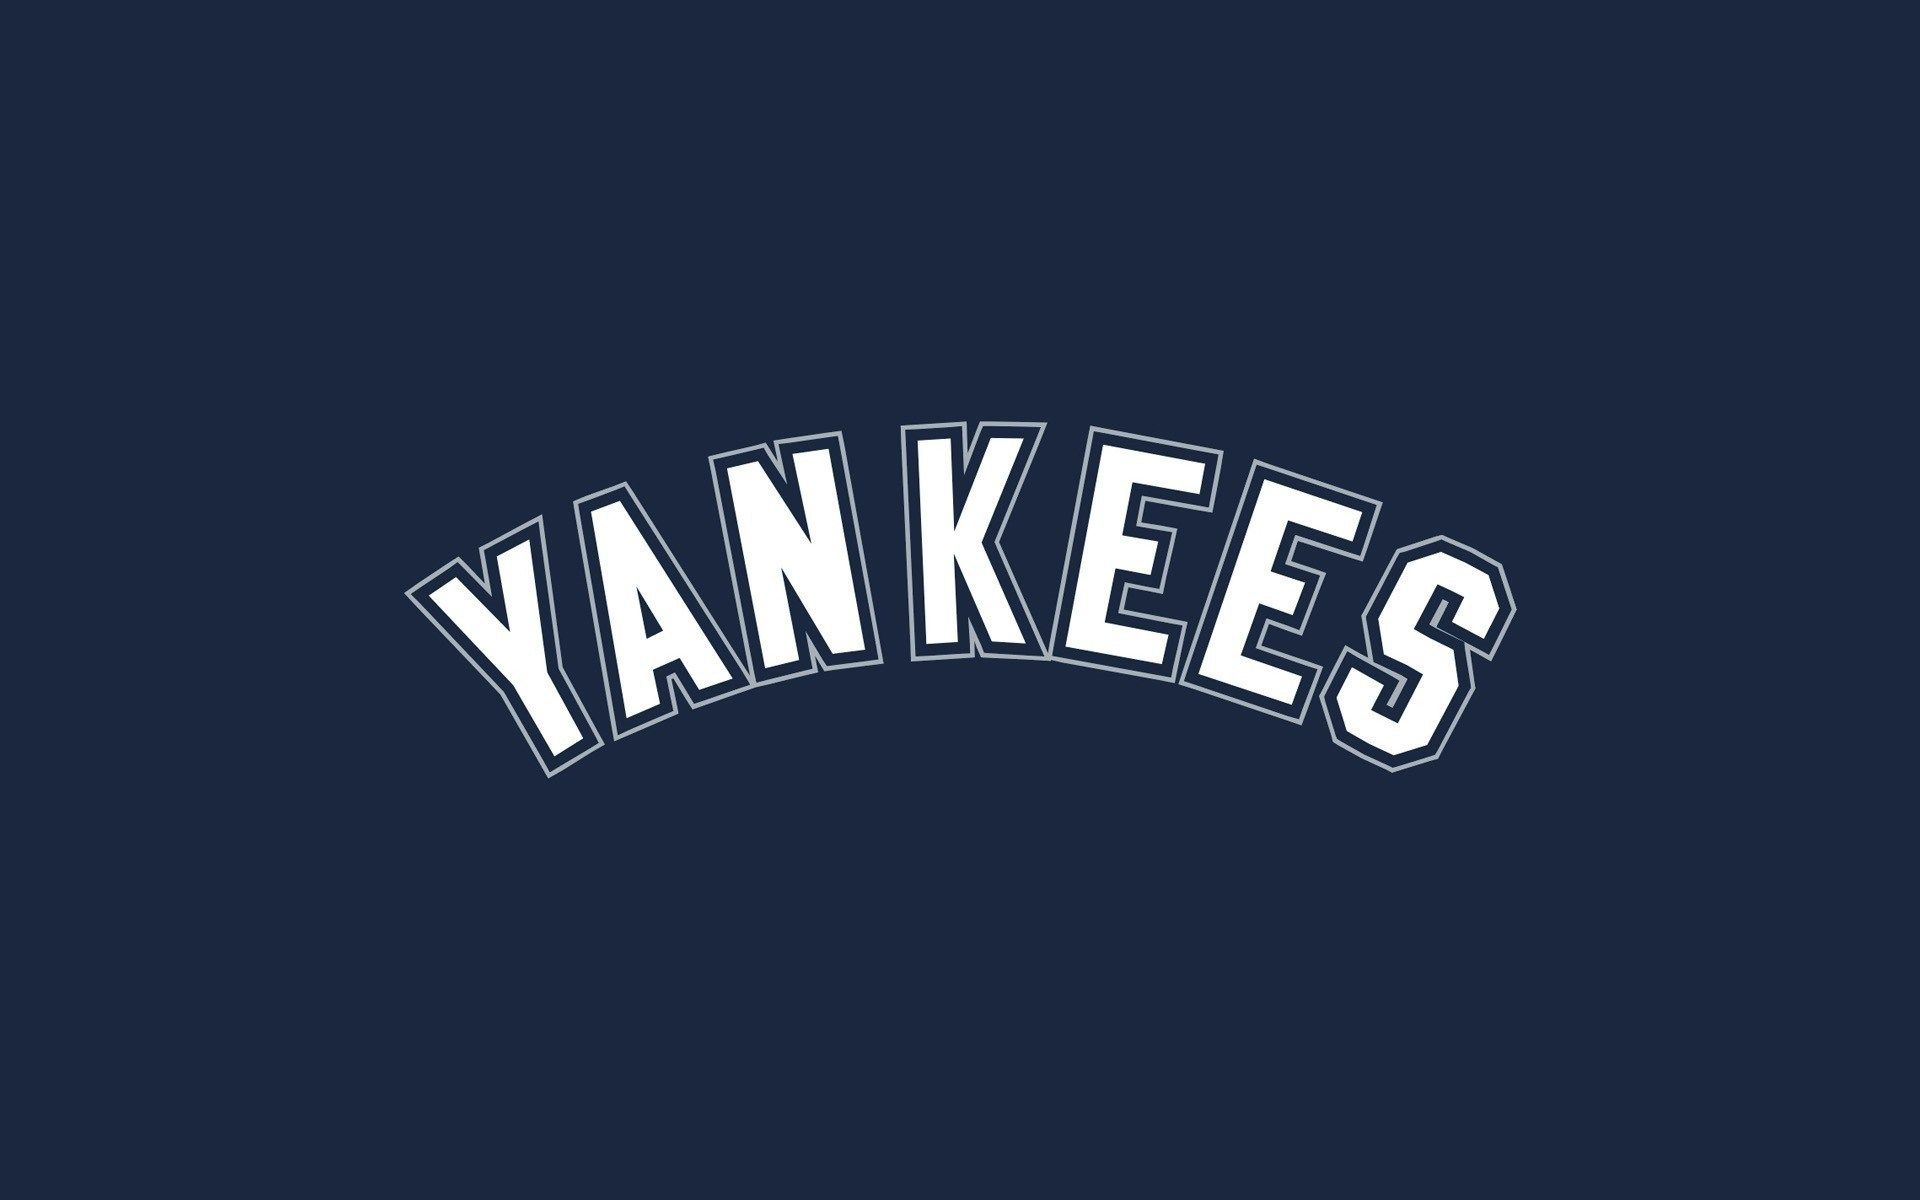 New York Yankees Wallpapers Hd Download New York Yankees Logo New York Yankees Ny Yankees Logo